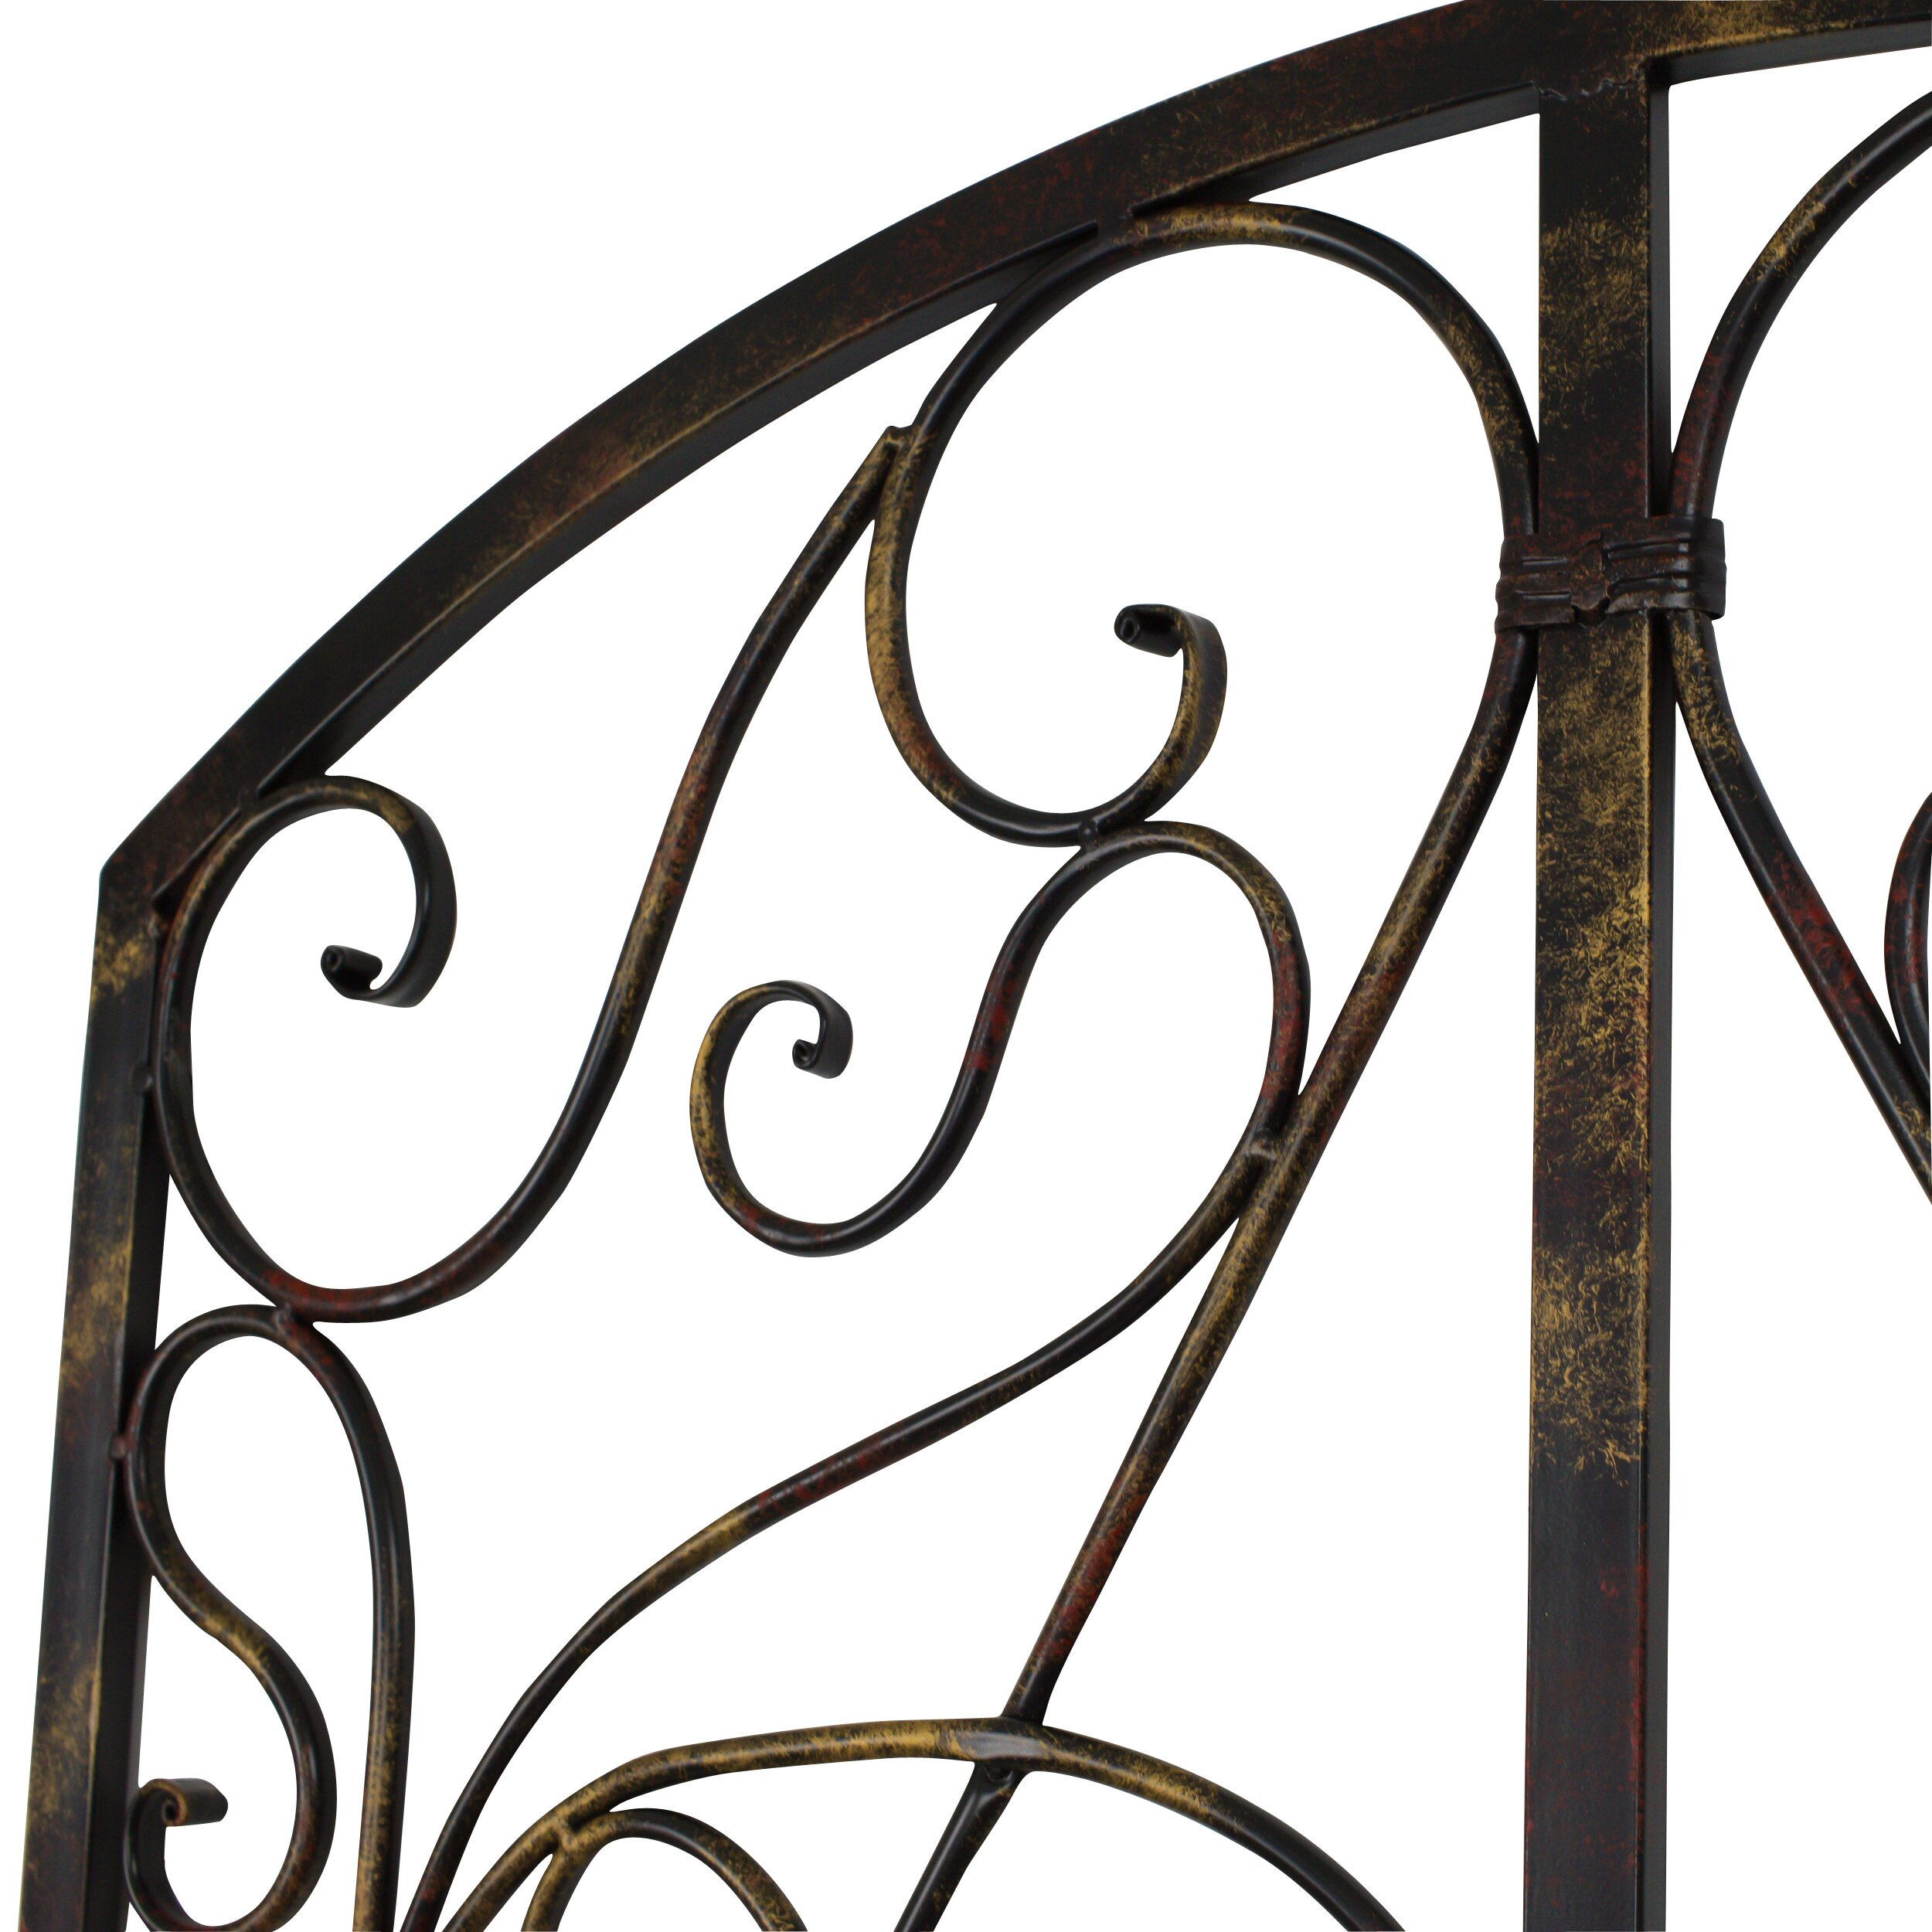 panel decorative luxurious iron fences a grey pattern ornate on feat exteriors panels walls concrete door ornament railing lighting design balcony glass scroll wrought hand fence decor victorian forged awesome rustic ideas with fixtures style